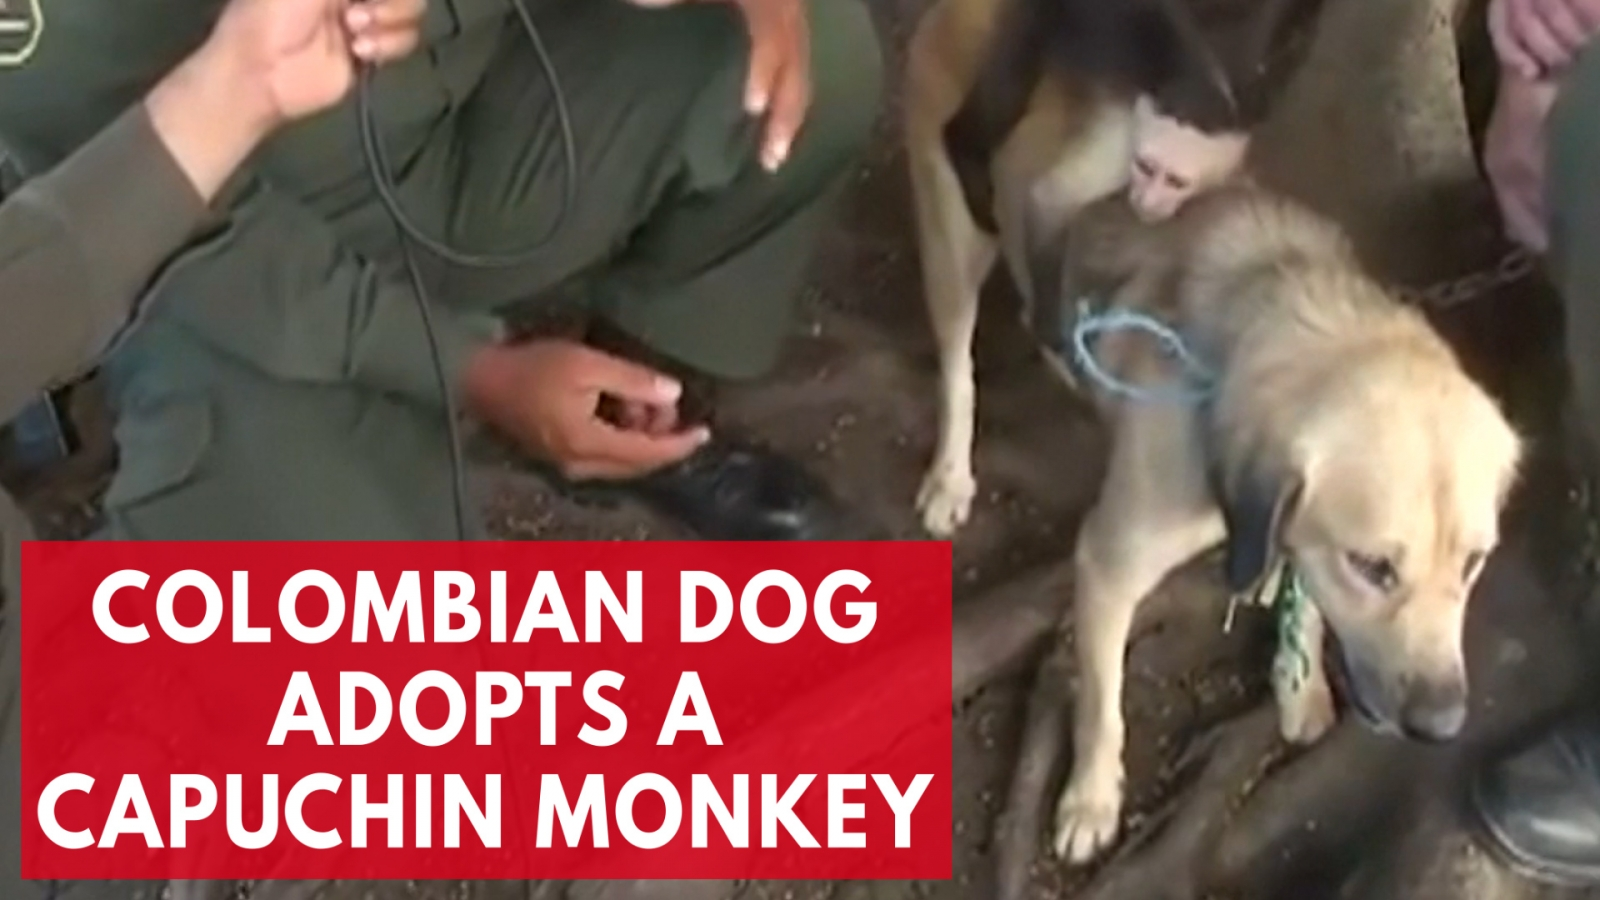 a-colombian-dog-adopts-capuchin-monkey-in-unlikely-friendship